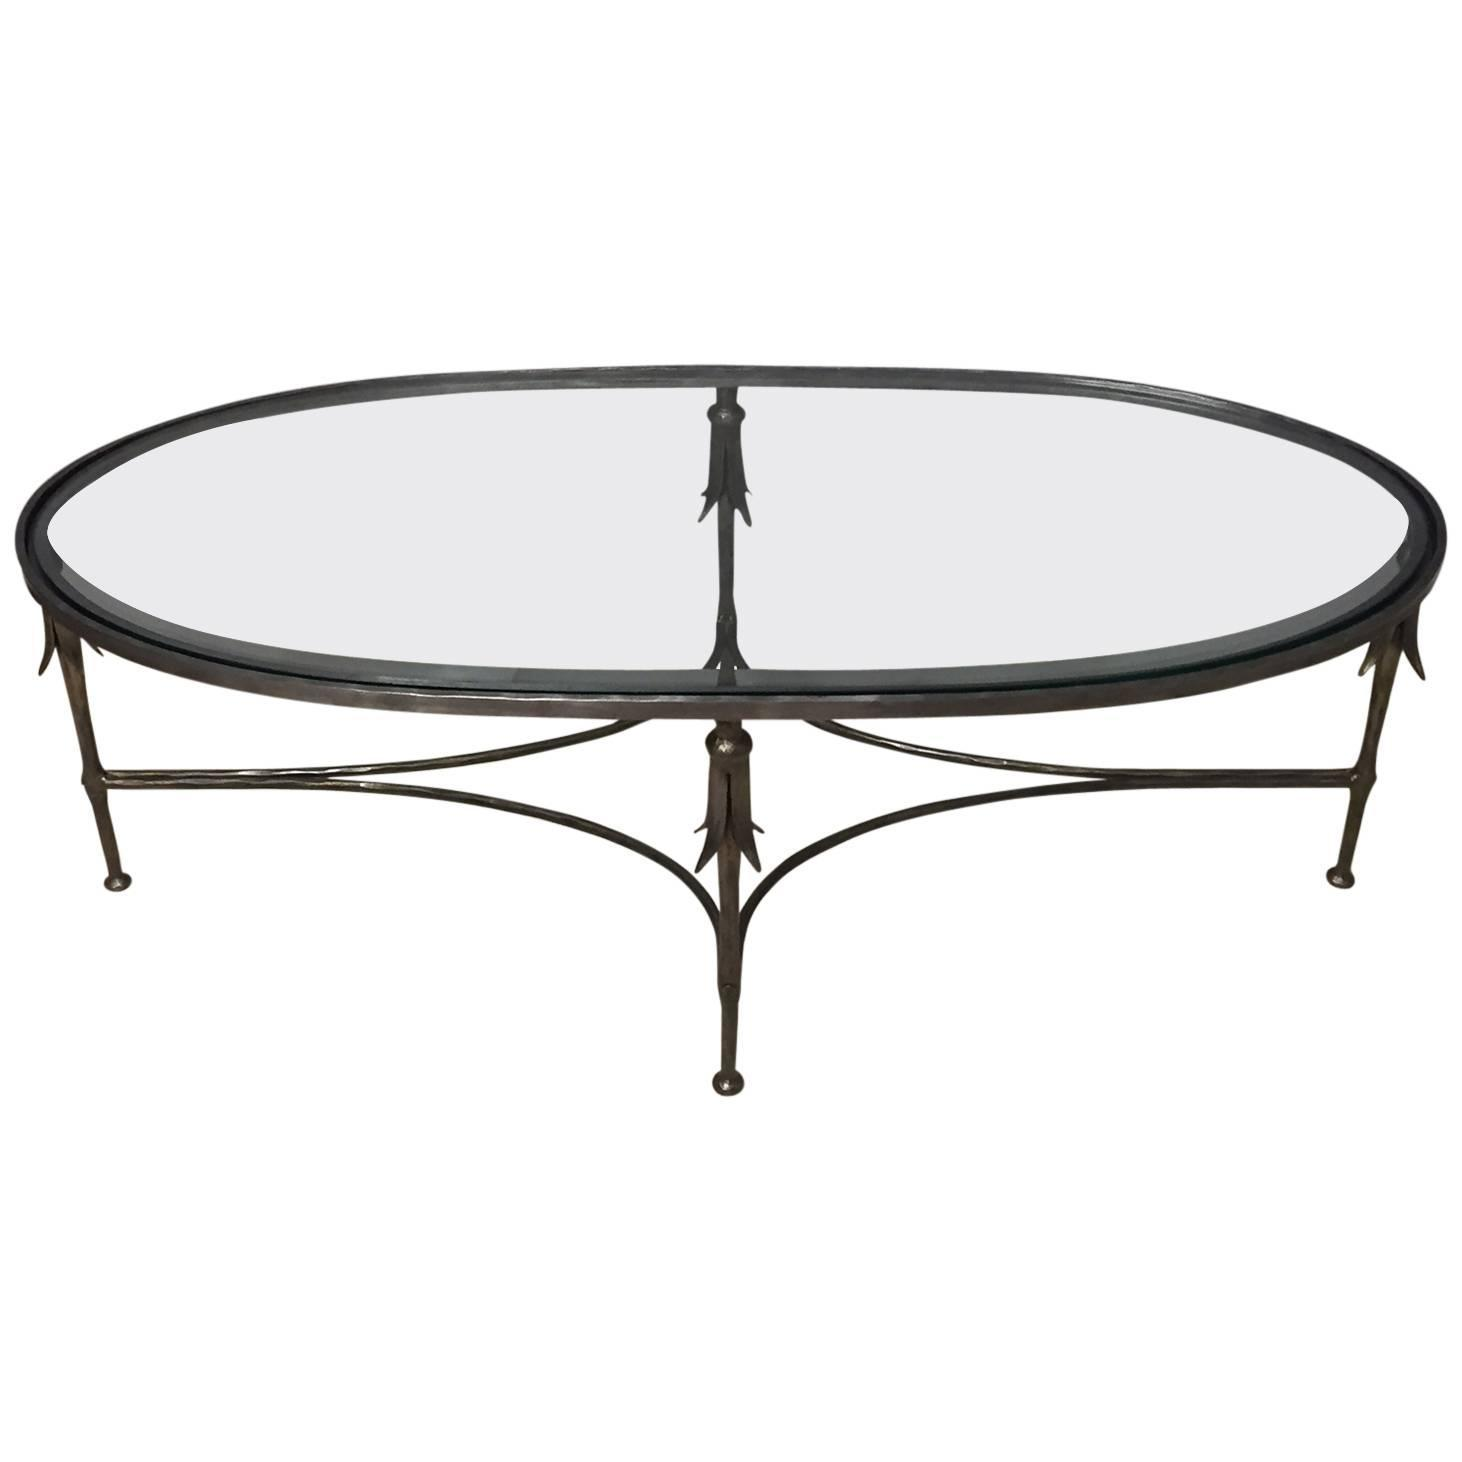 Elegant french hand wrought iron and glass oblong coffee table at 1stdibs One of a kind coffee tables